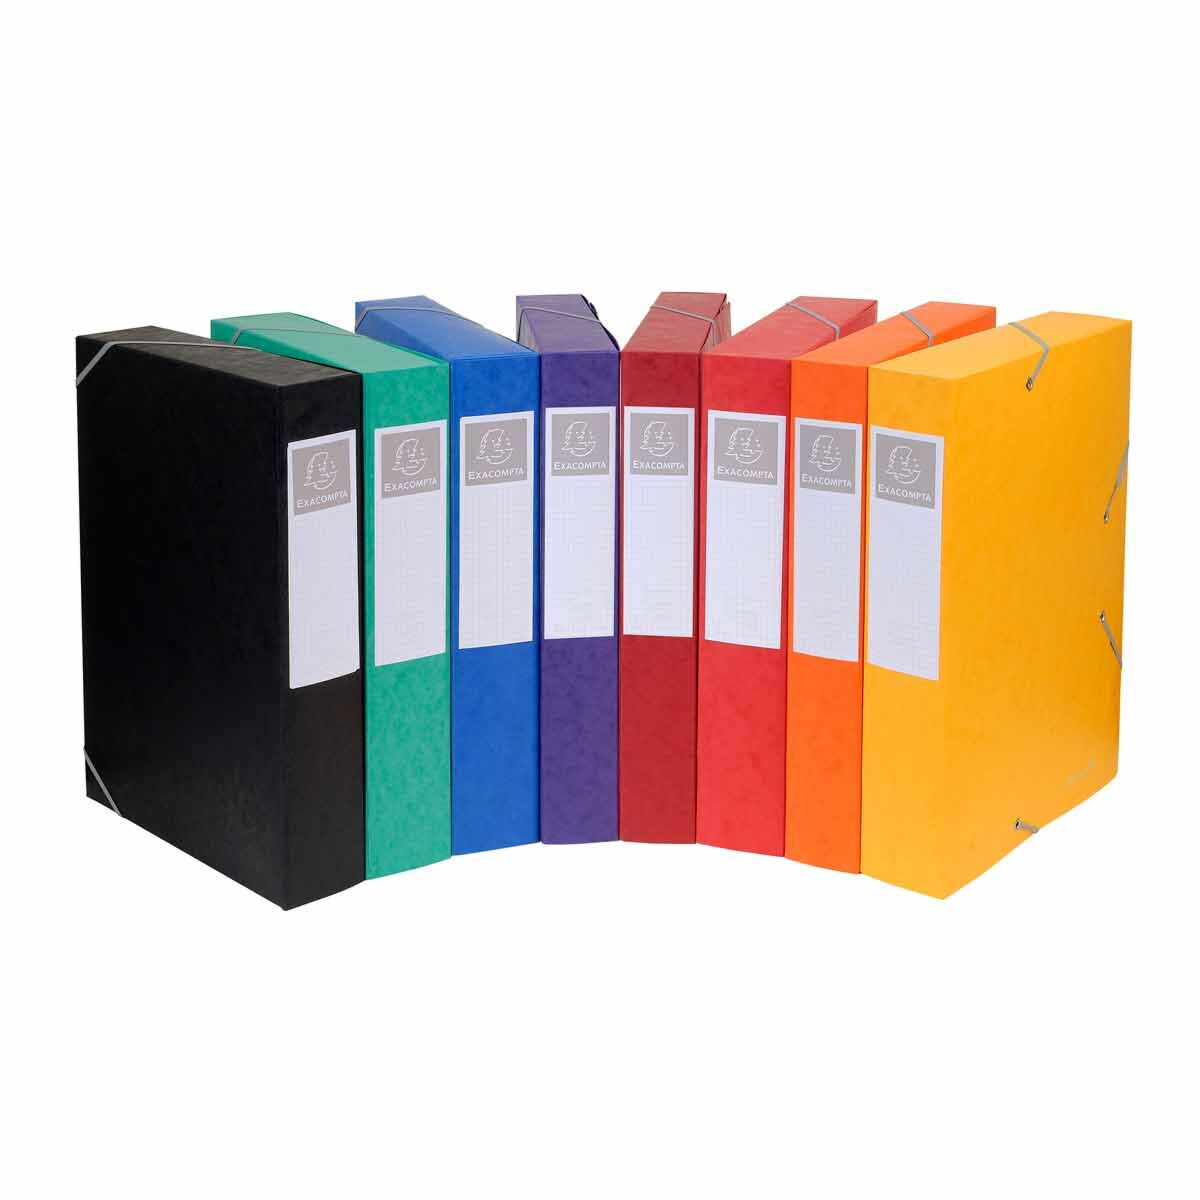 Exacompta Elasticated Box File Pressboard A4 60mm Pack of 10 Assorted